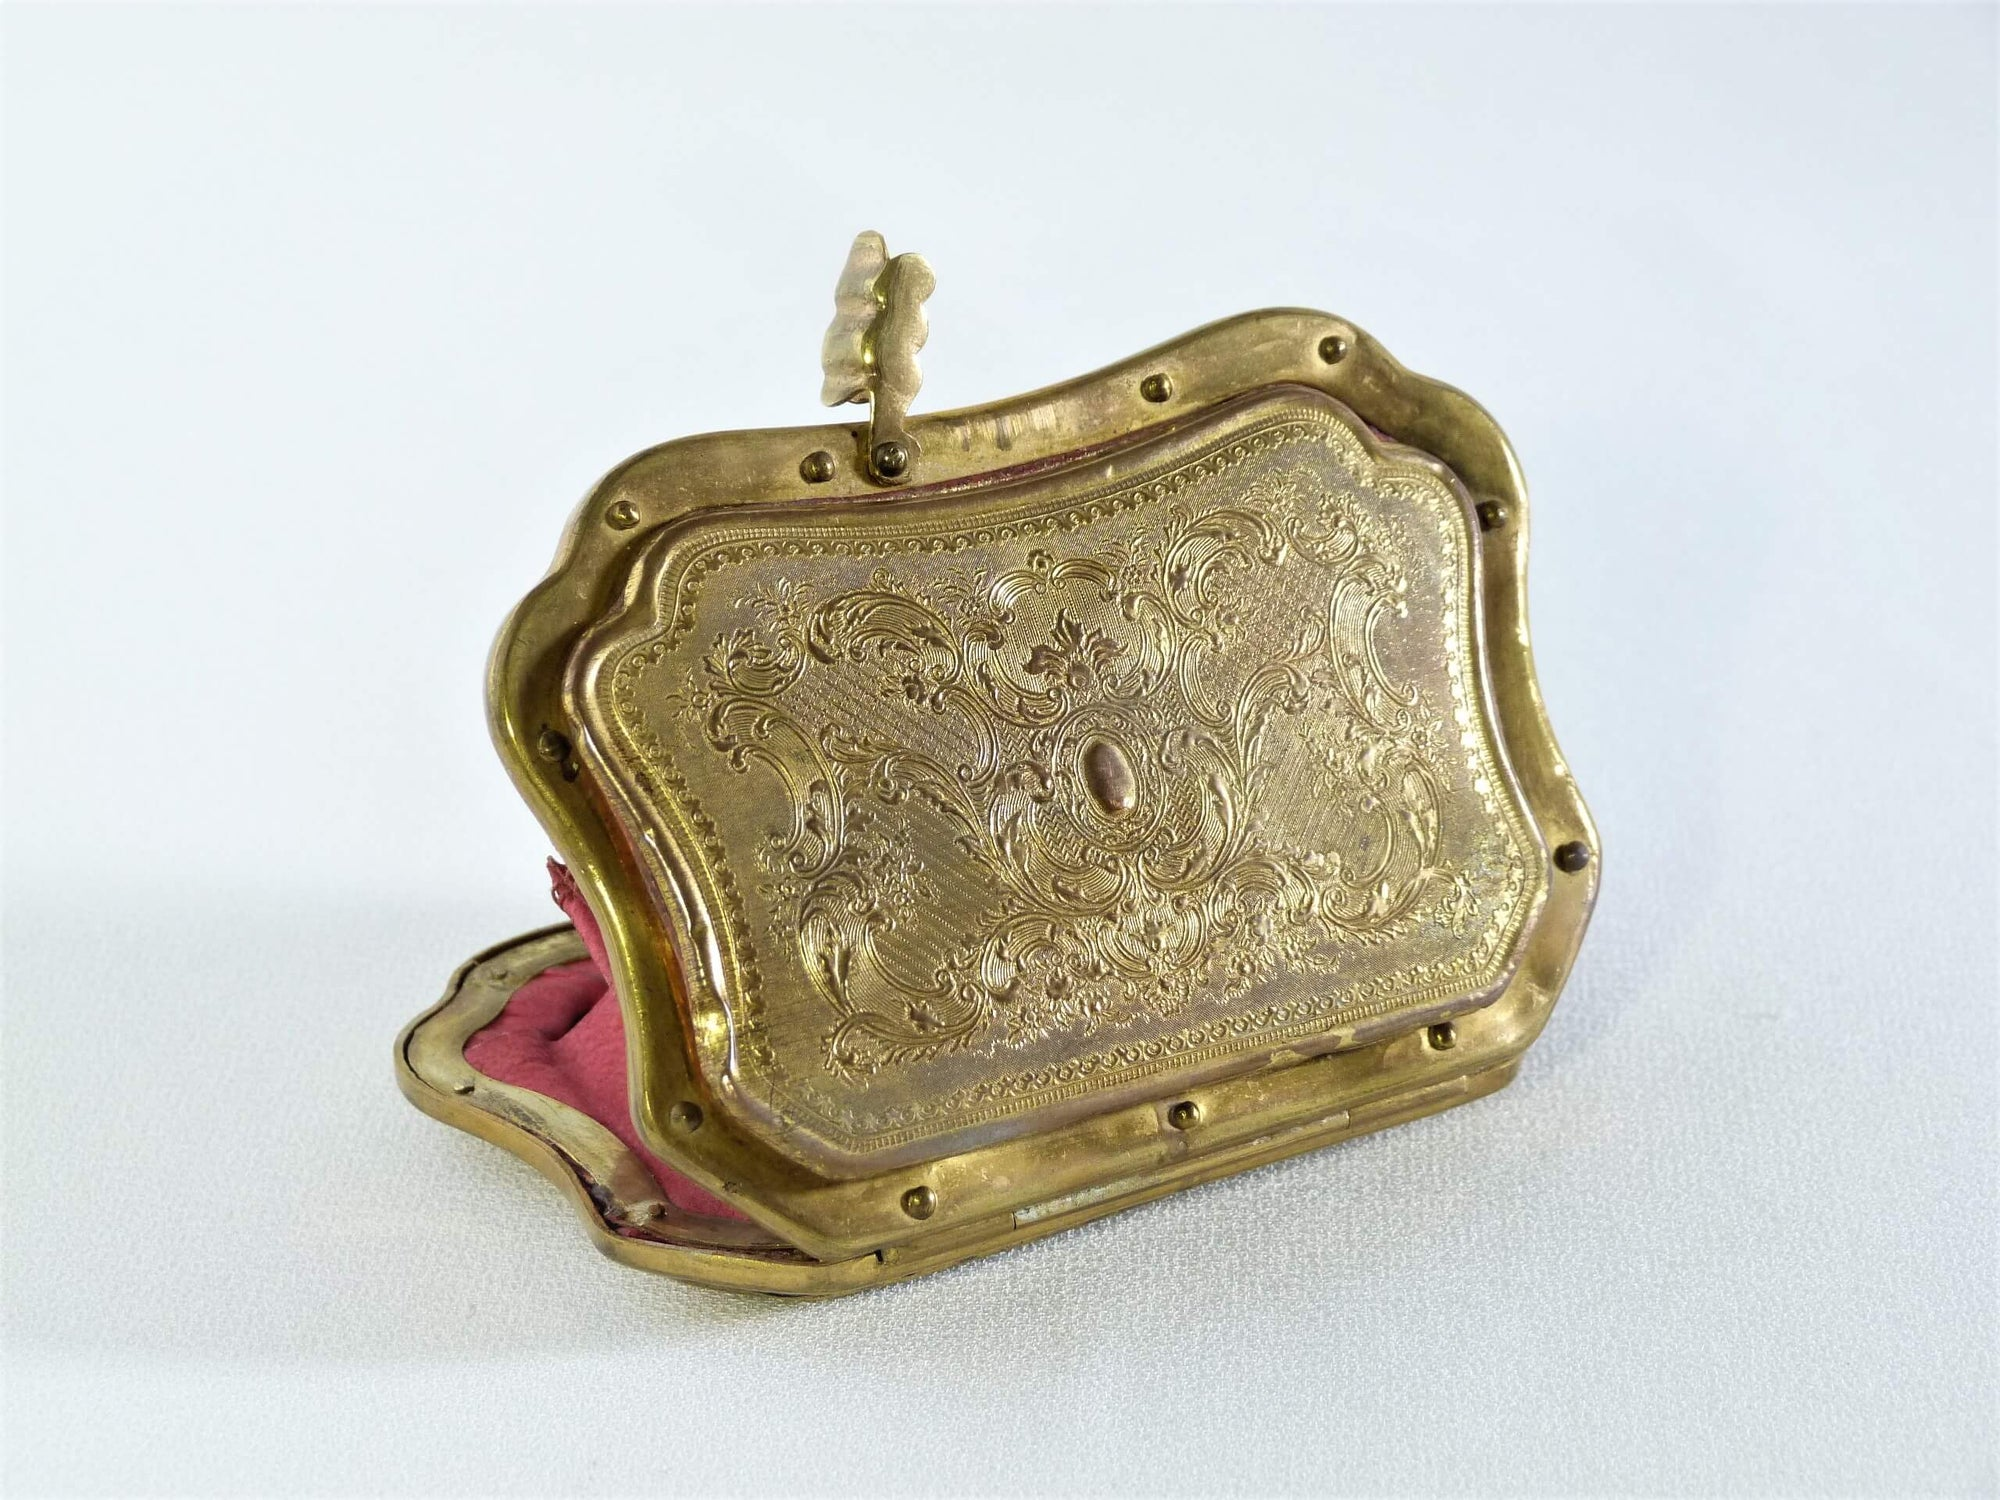 Victorian Ladies Purse, Small Coin Purse, Ladies Accessory